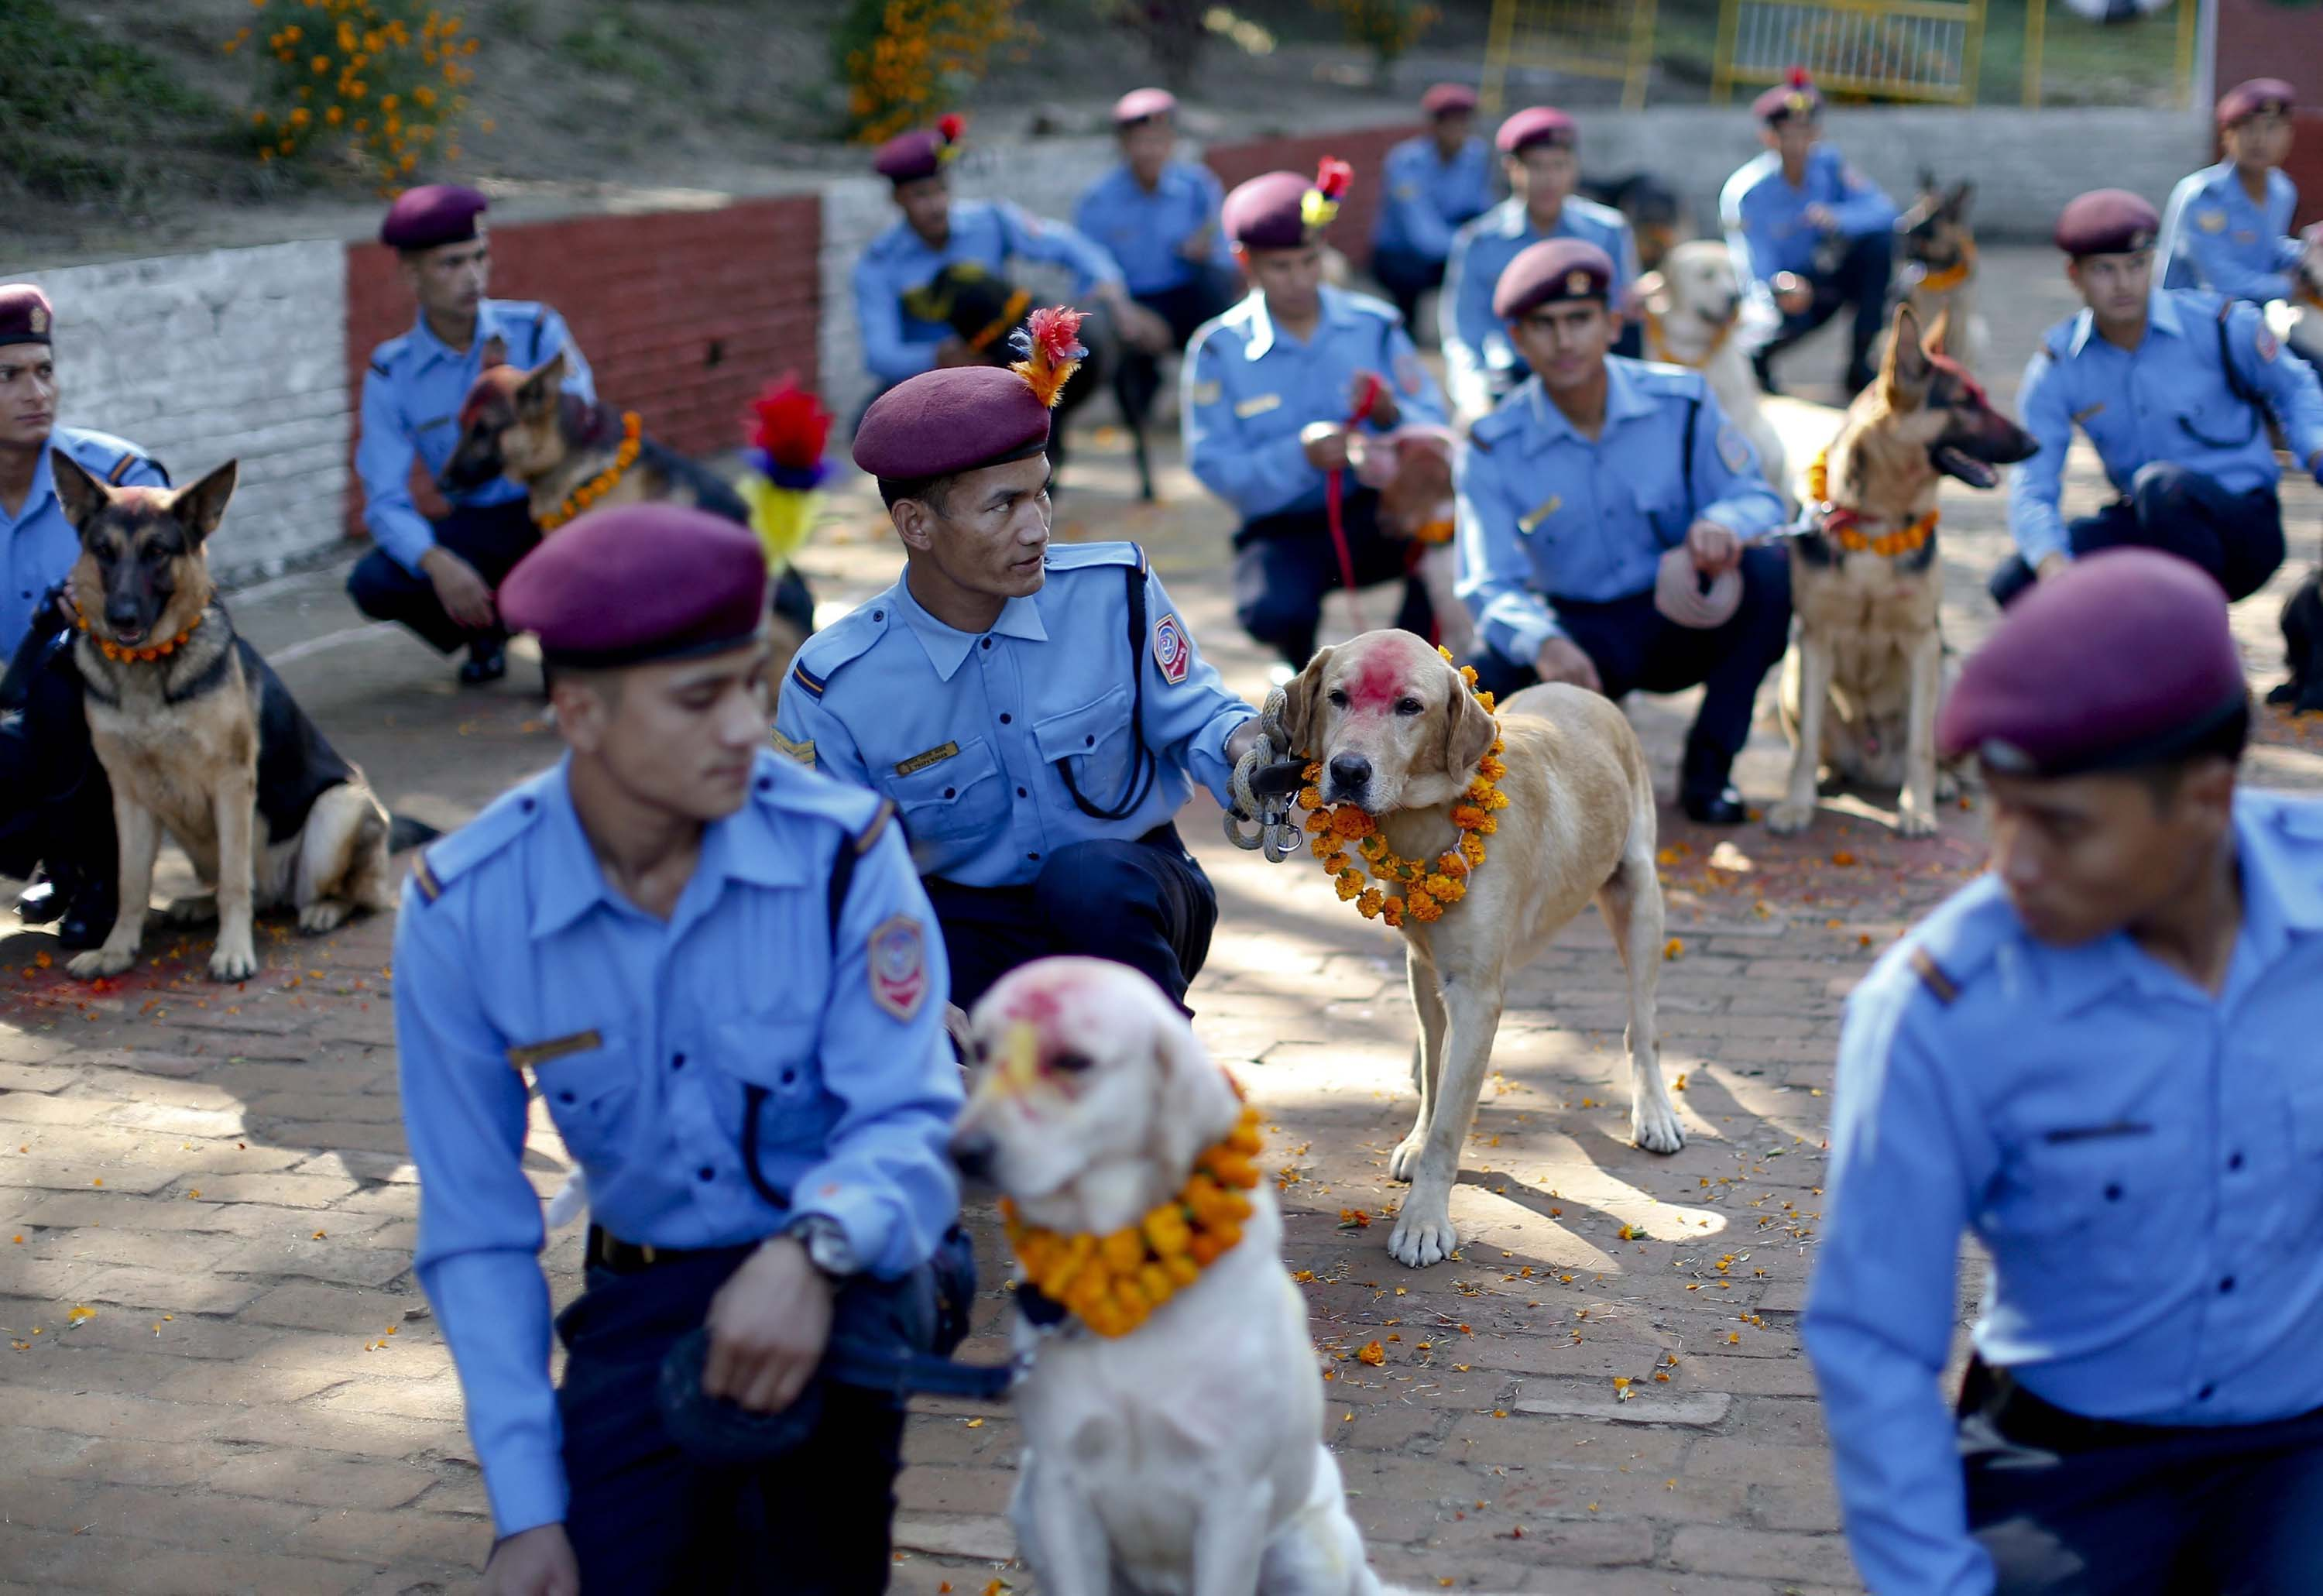 Nepalese police officers kneel next to dogs with colored powder on their heads at Nepal's Central Police Dog Training School as part of the Diwali festival, also known as Tihar Festival, in Kathmandu, Nepal on Oct. 22, 2014.